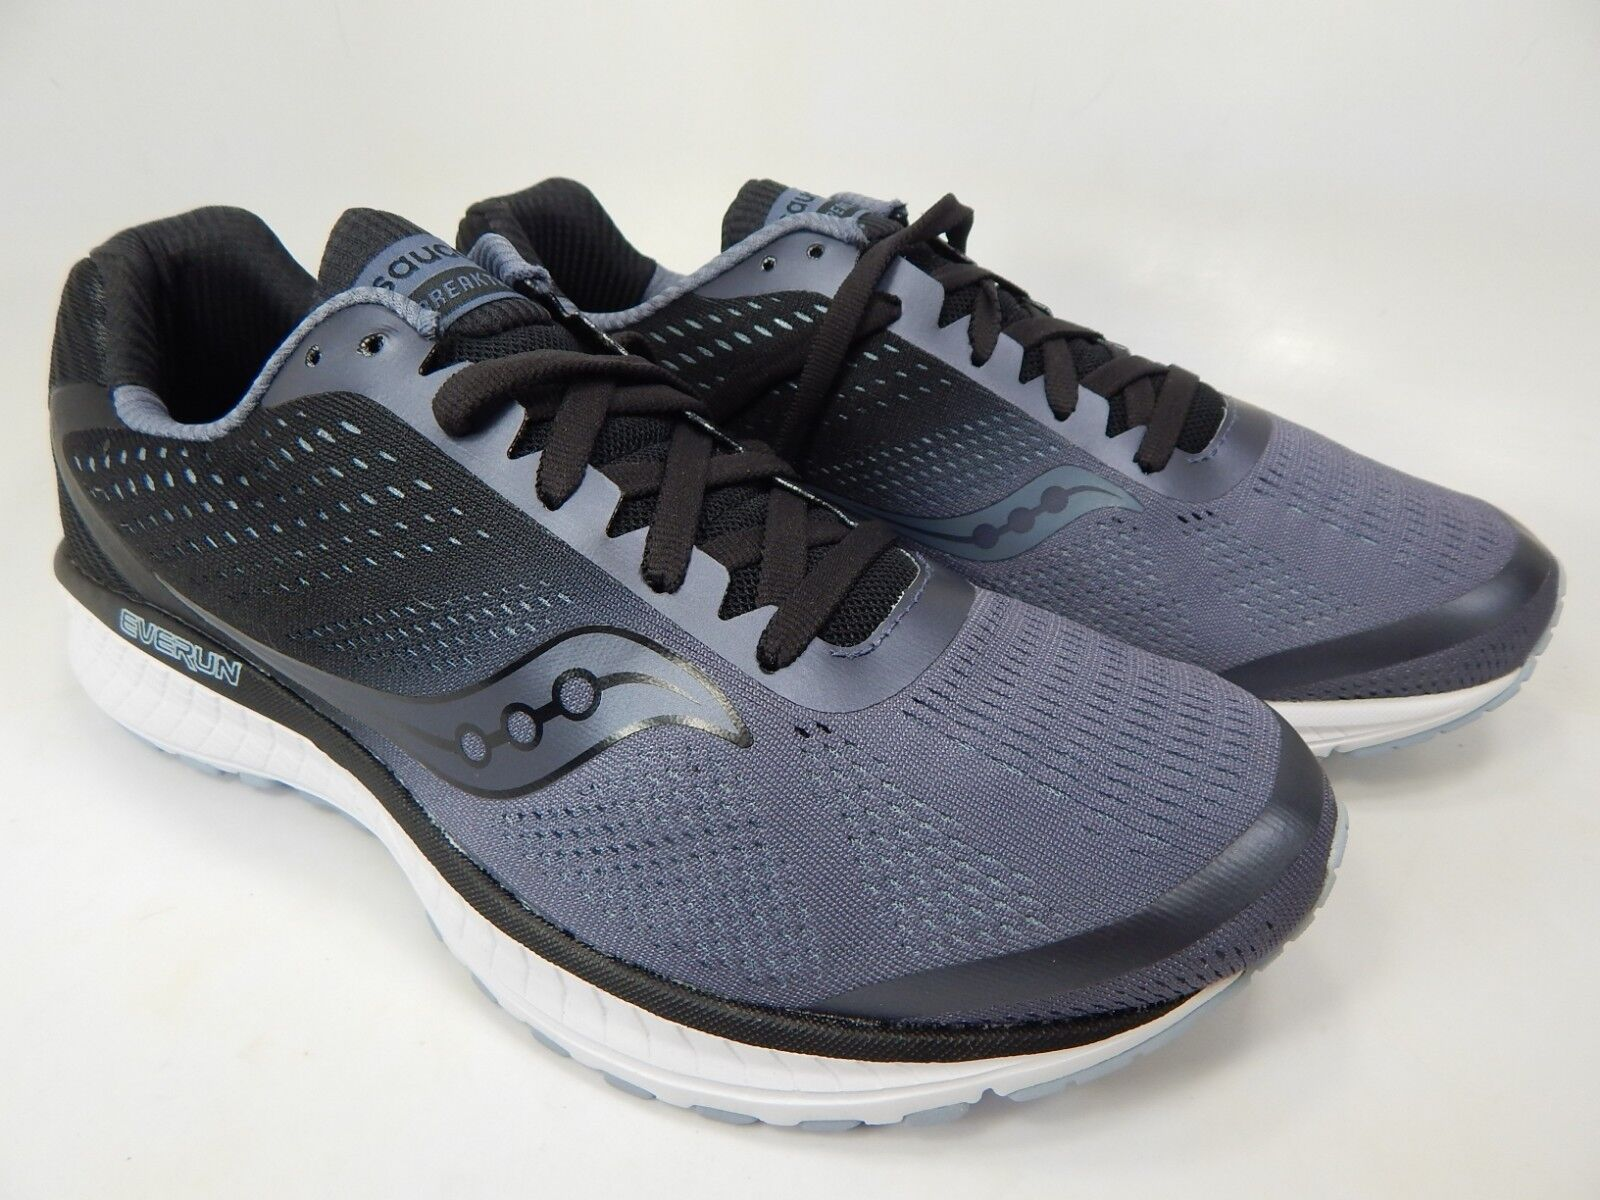 on sale 81c40 e3910 Saucony Breakthru 4 Size 9 M (D) Men s Running Shoes Shoes Shoes Grey